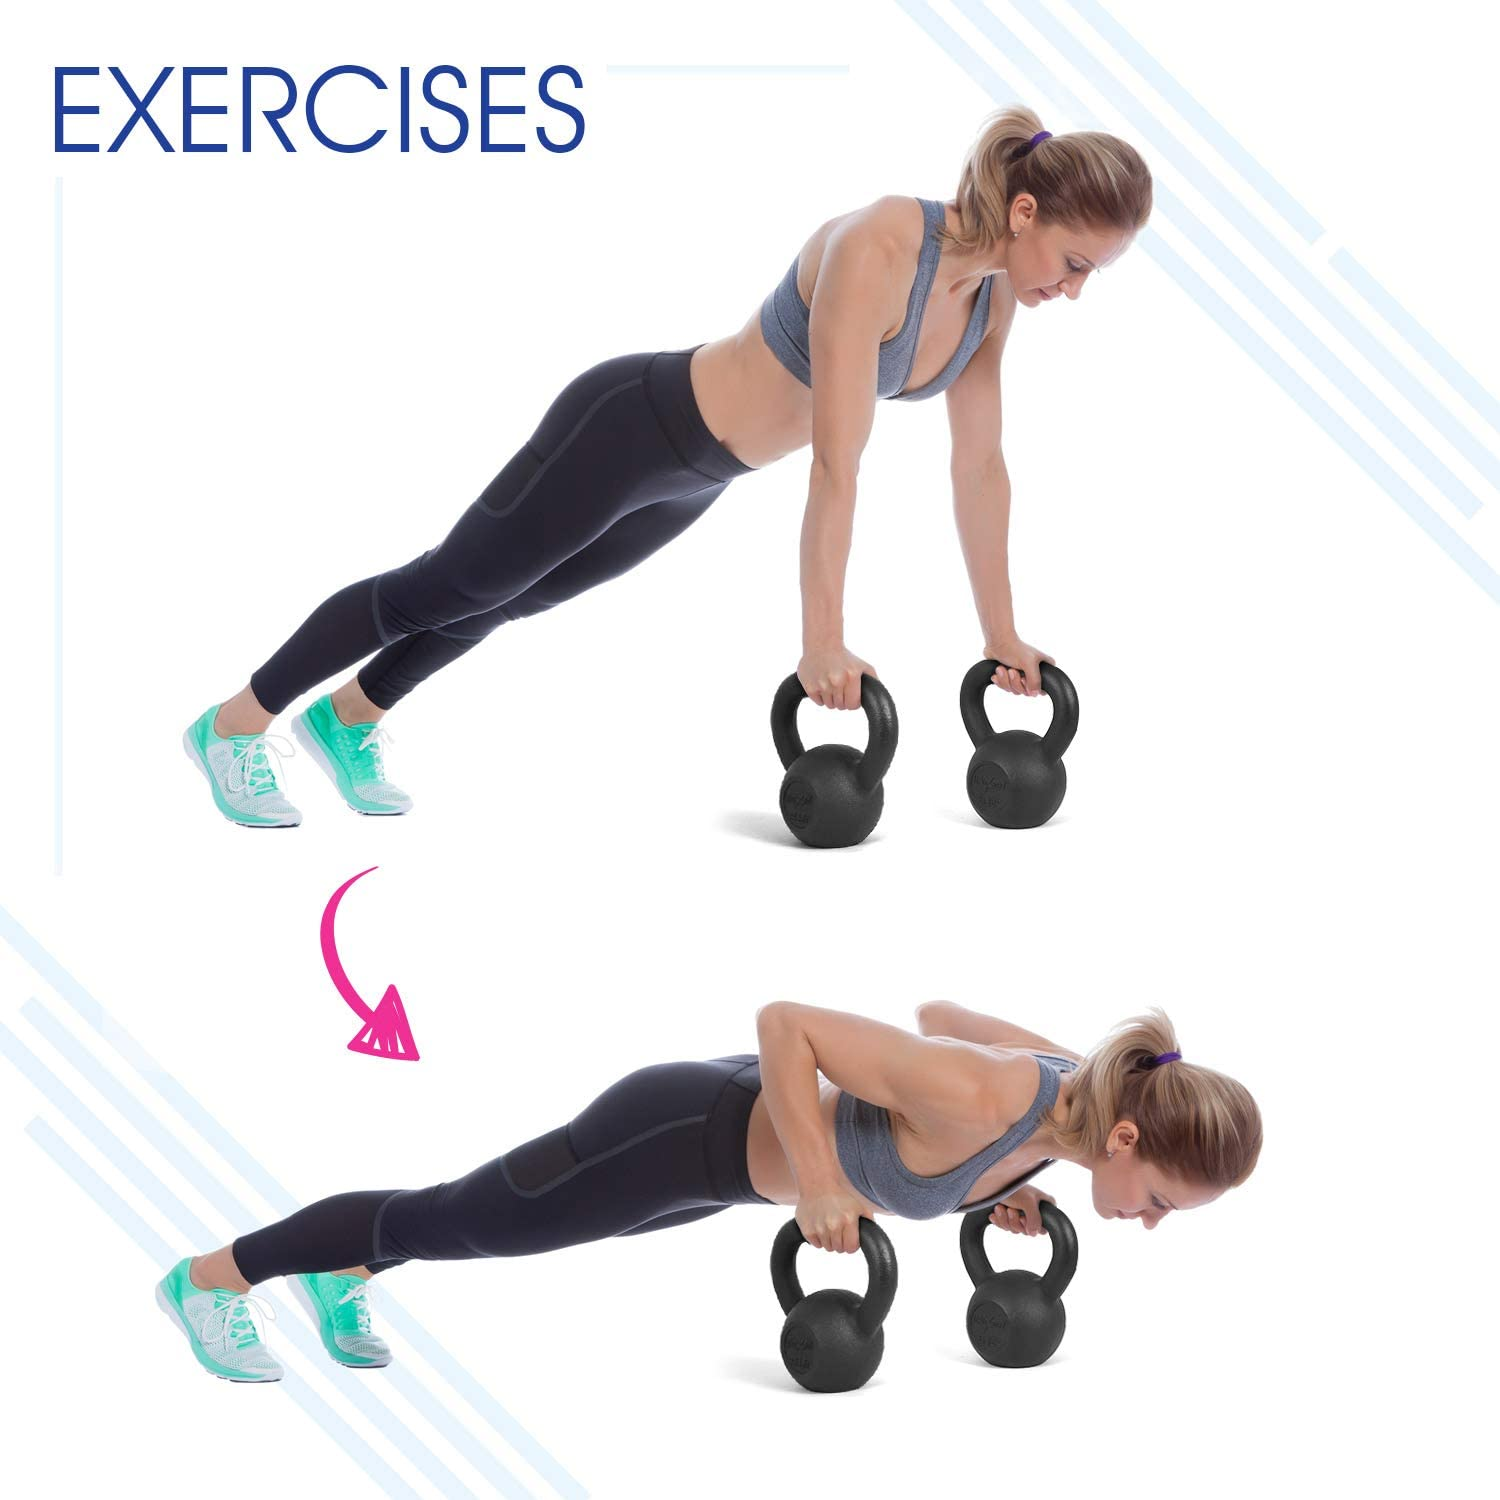 Yes4All Solid Cast Iron Kettlebell Weights Great for Full Body Workout and Strength Training